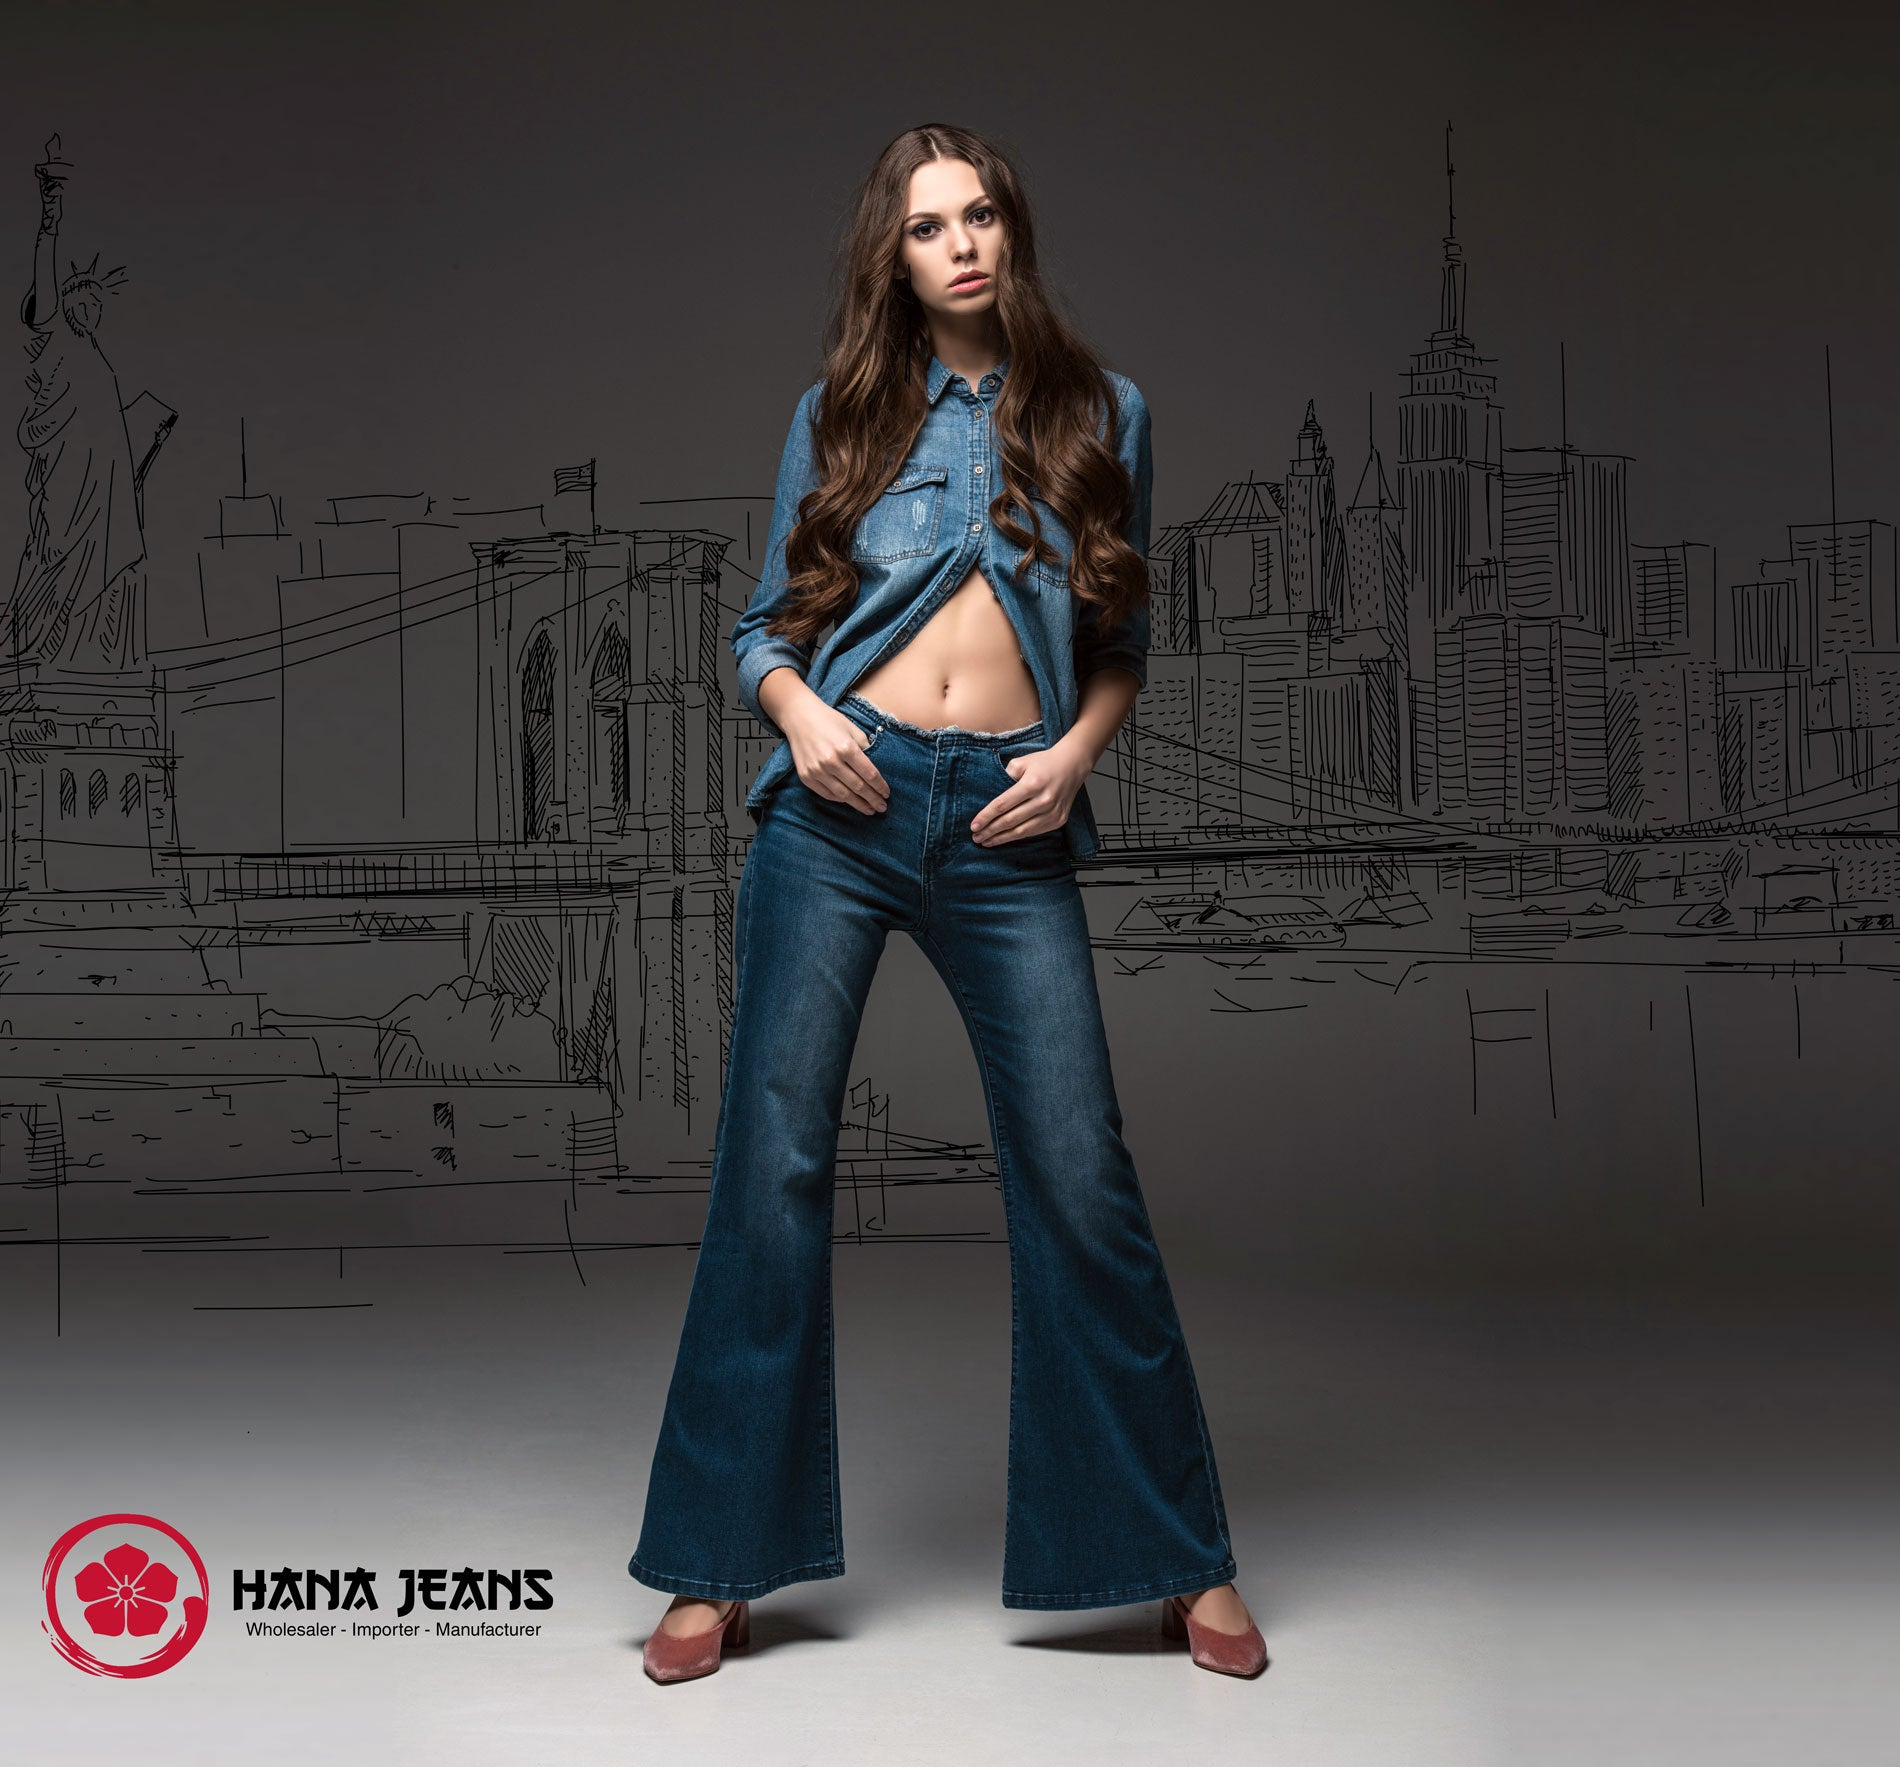 Flared Jeans - The Vintage Vibe of Denim.